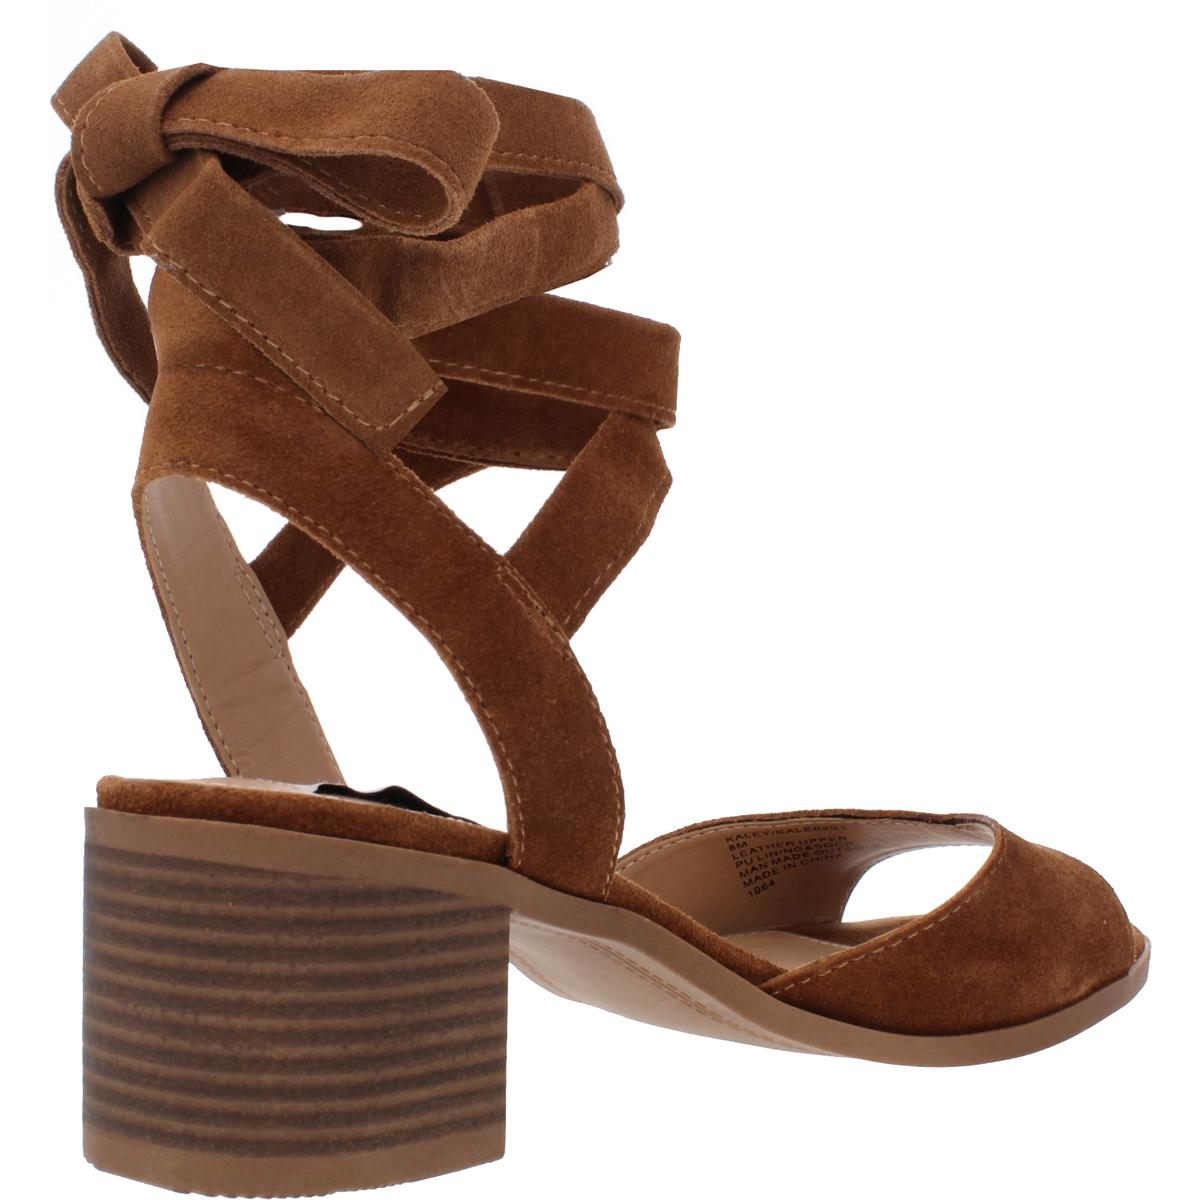 Steve-Madden-Womens-Kaley-Suede-Ankle-Wrap-Dress-Sandals-Shoes-BHFO-0145 thumbnail 6